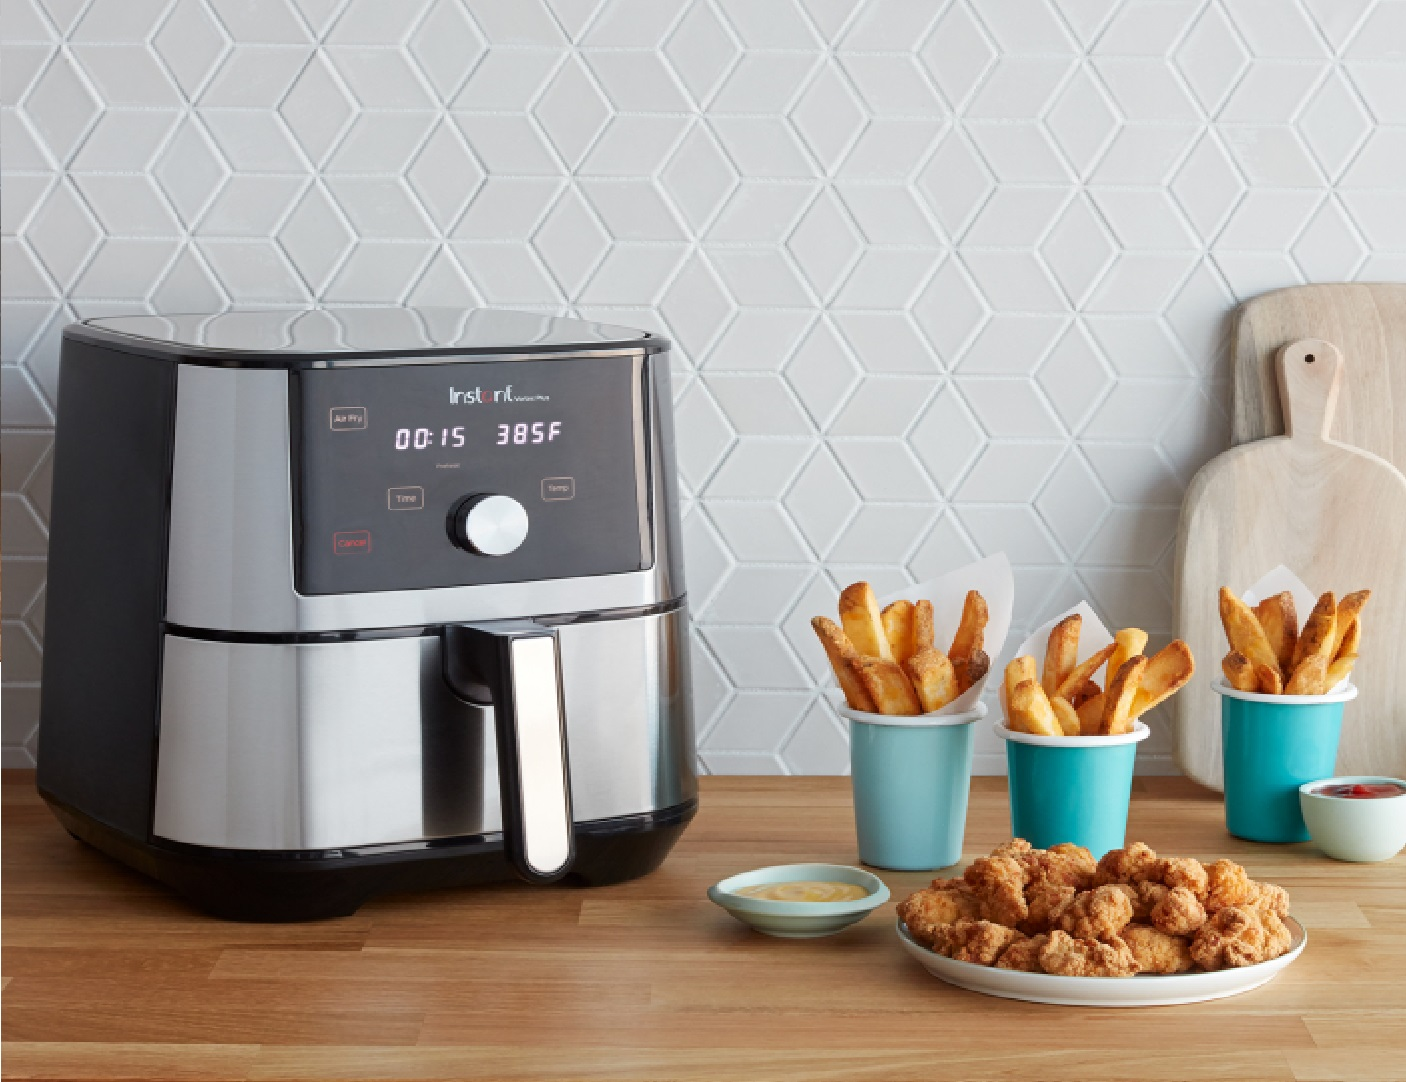 image of the Instant Pot Vortex Plus Air Fryer Oven on a table surrounded by tasty treats